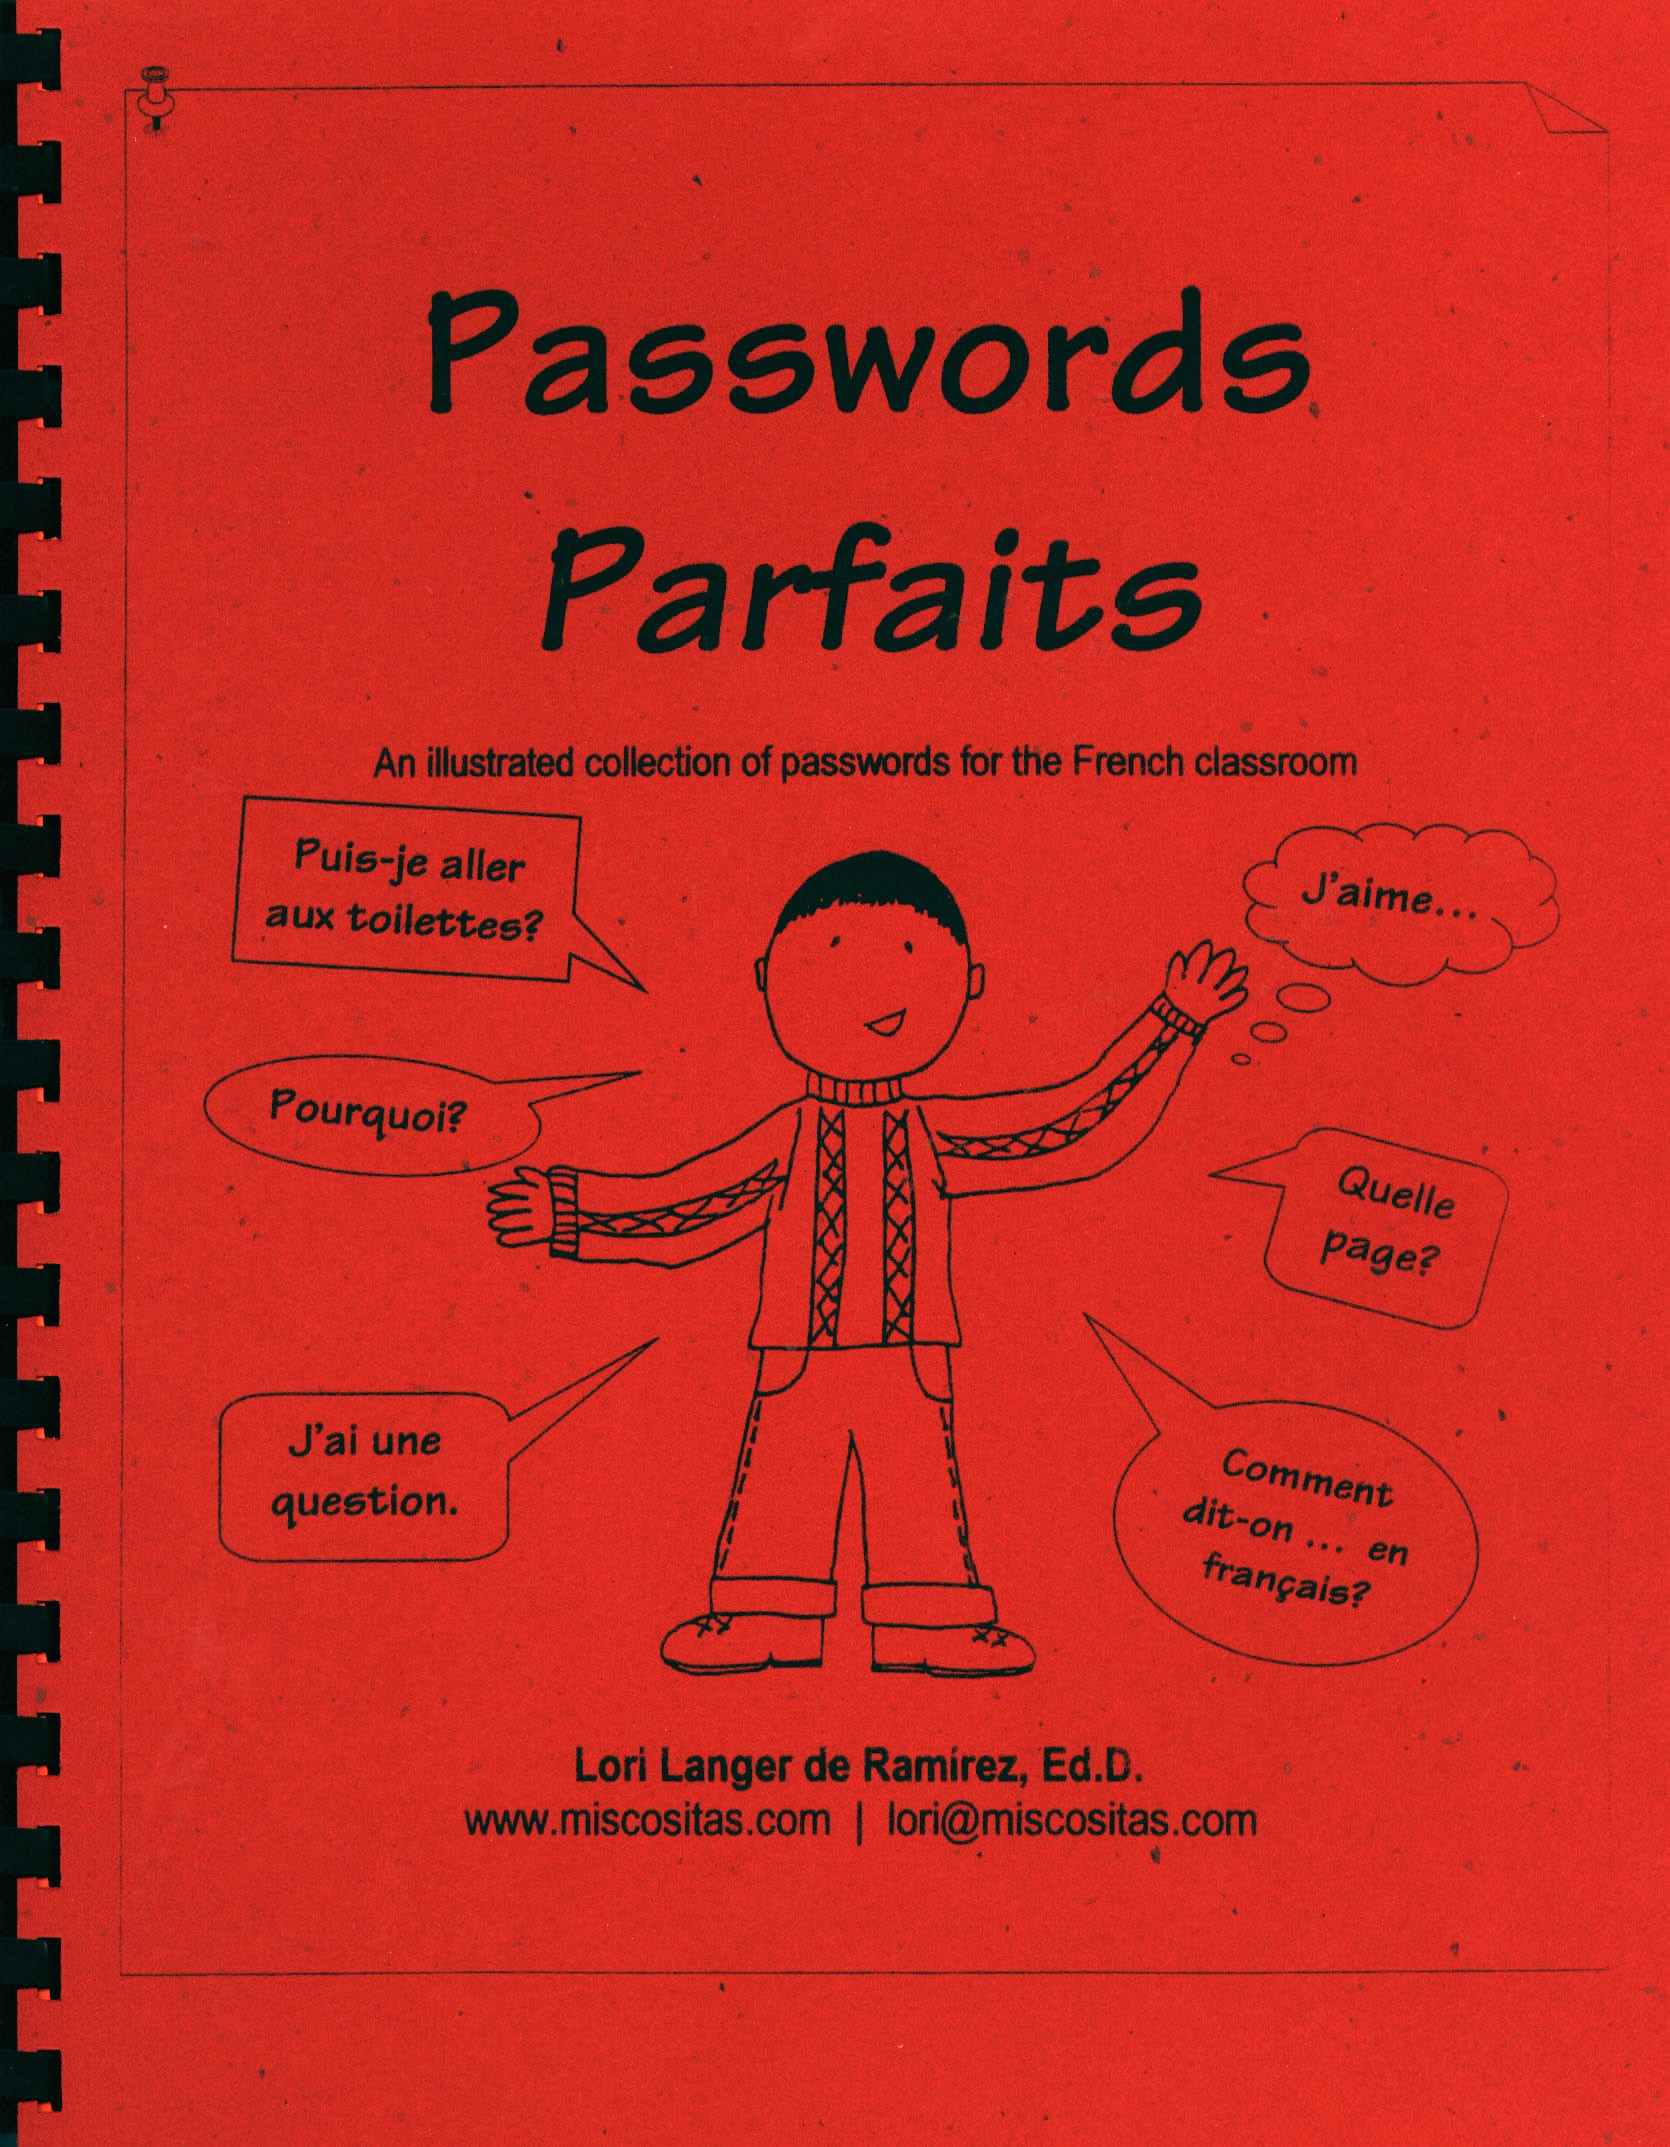 Passwords Parfaits